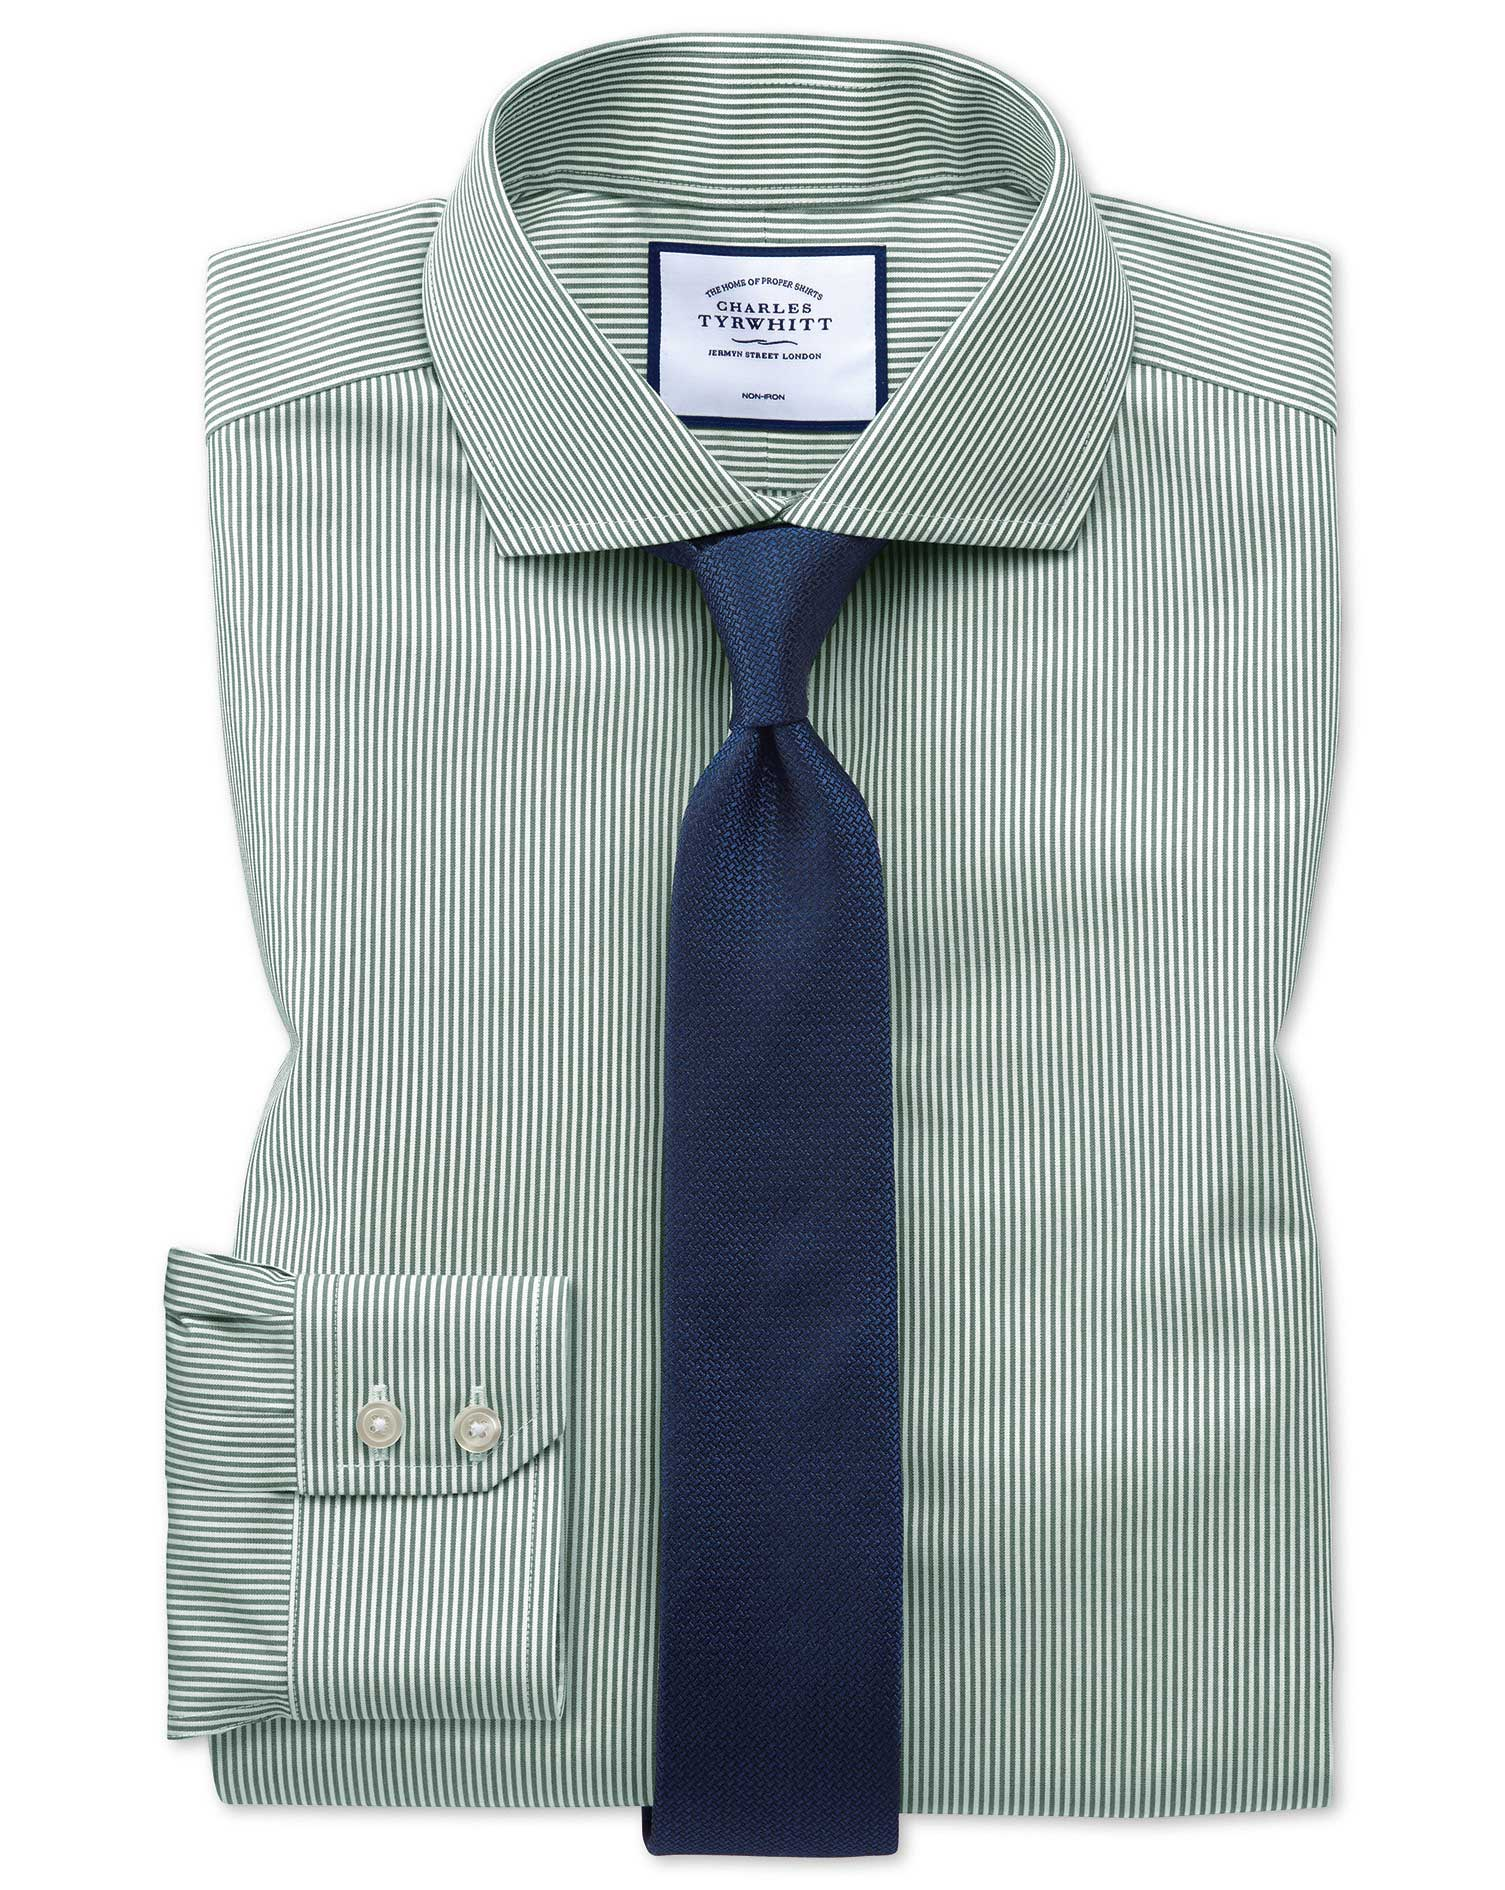 Extra Slim Fit Non-Iron Cutaway Collar Olive Bengal Stripe Cotton Formal Shirt Single Cuff Size 16.5